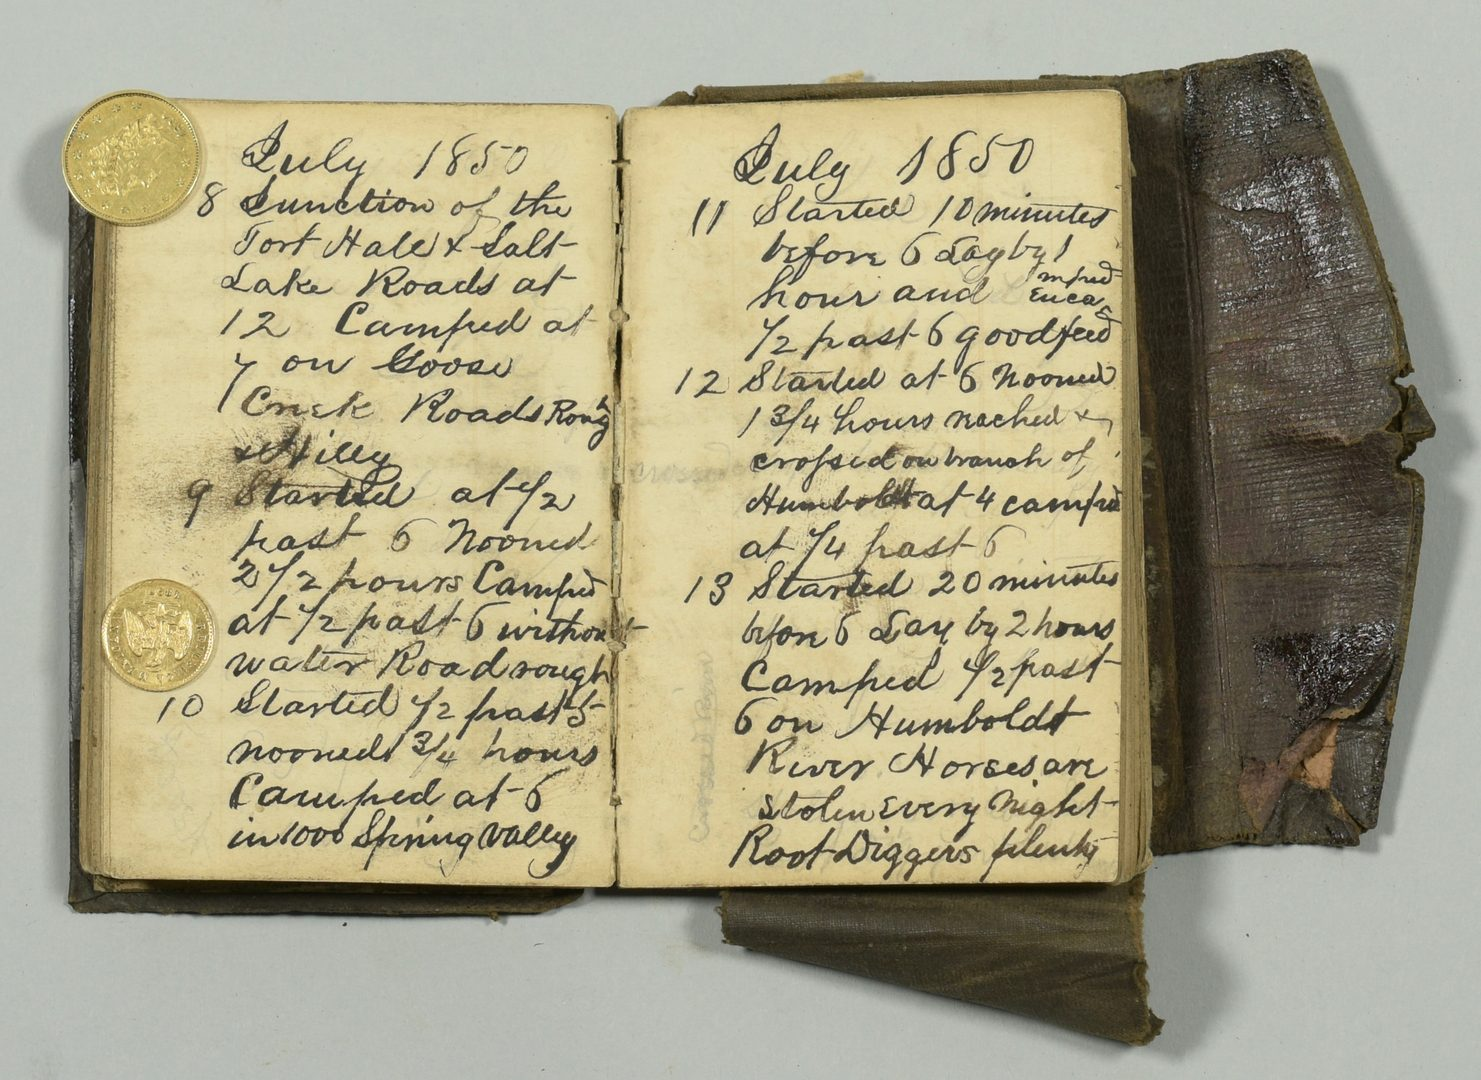 Lot 237: Gold Rush Diary, Artifacts of Ed Hicks, TN